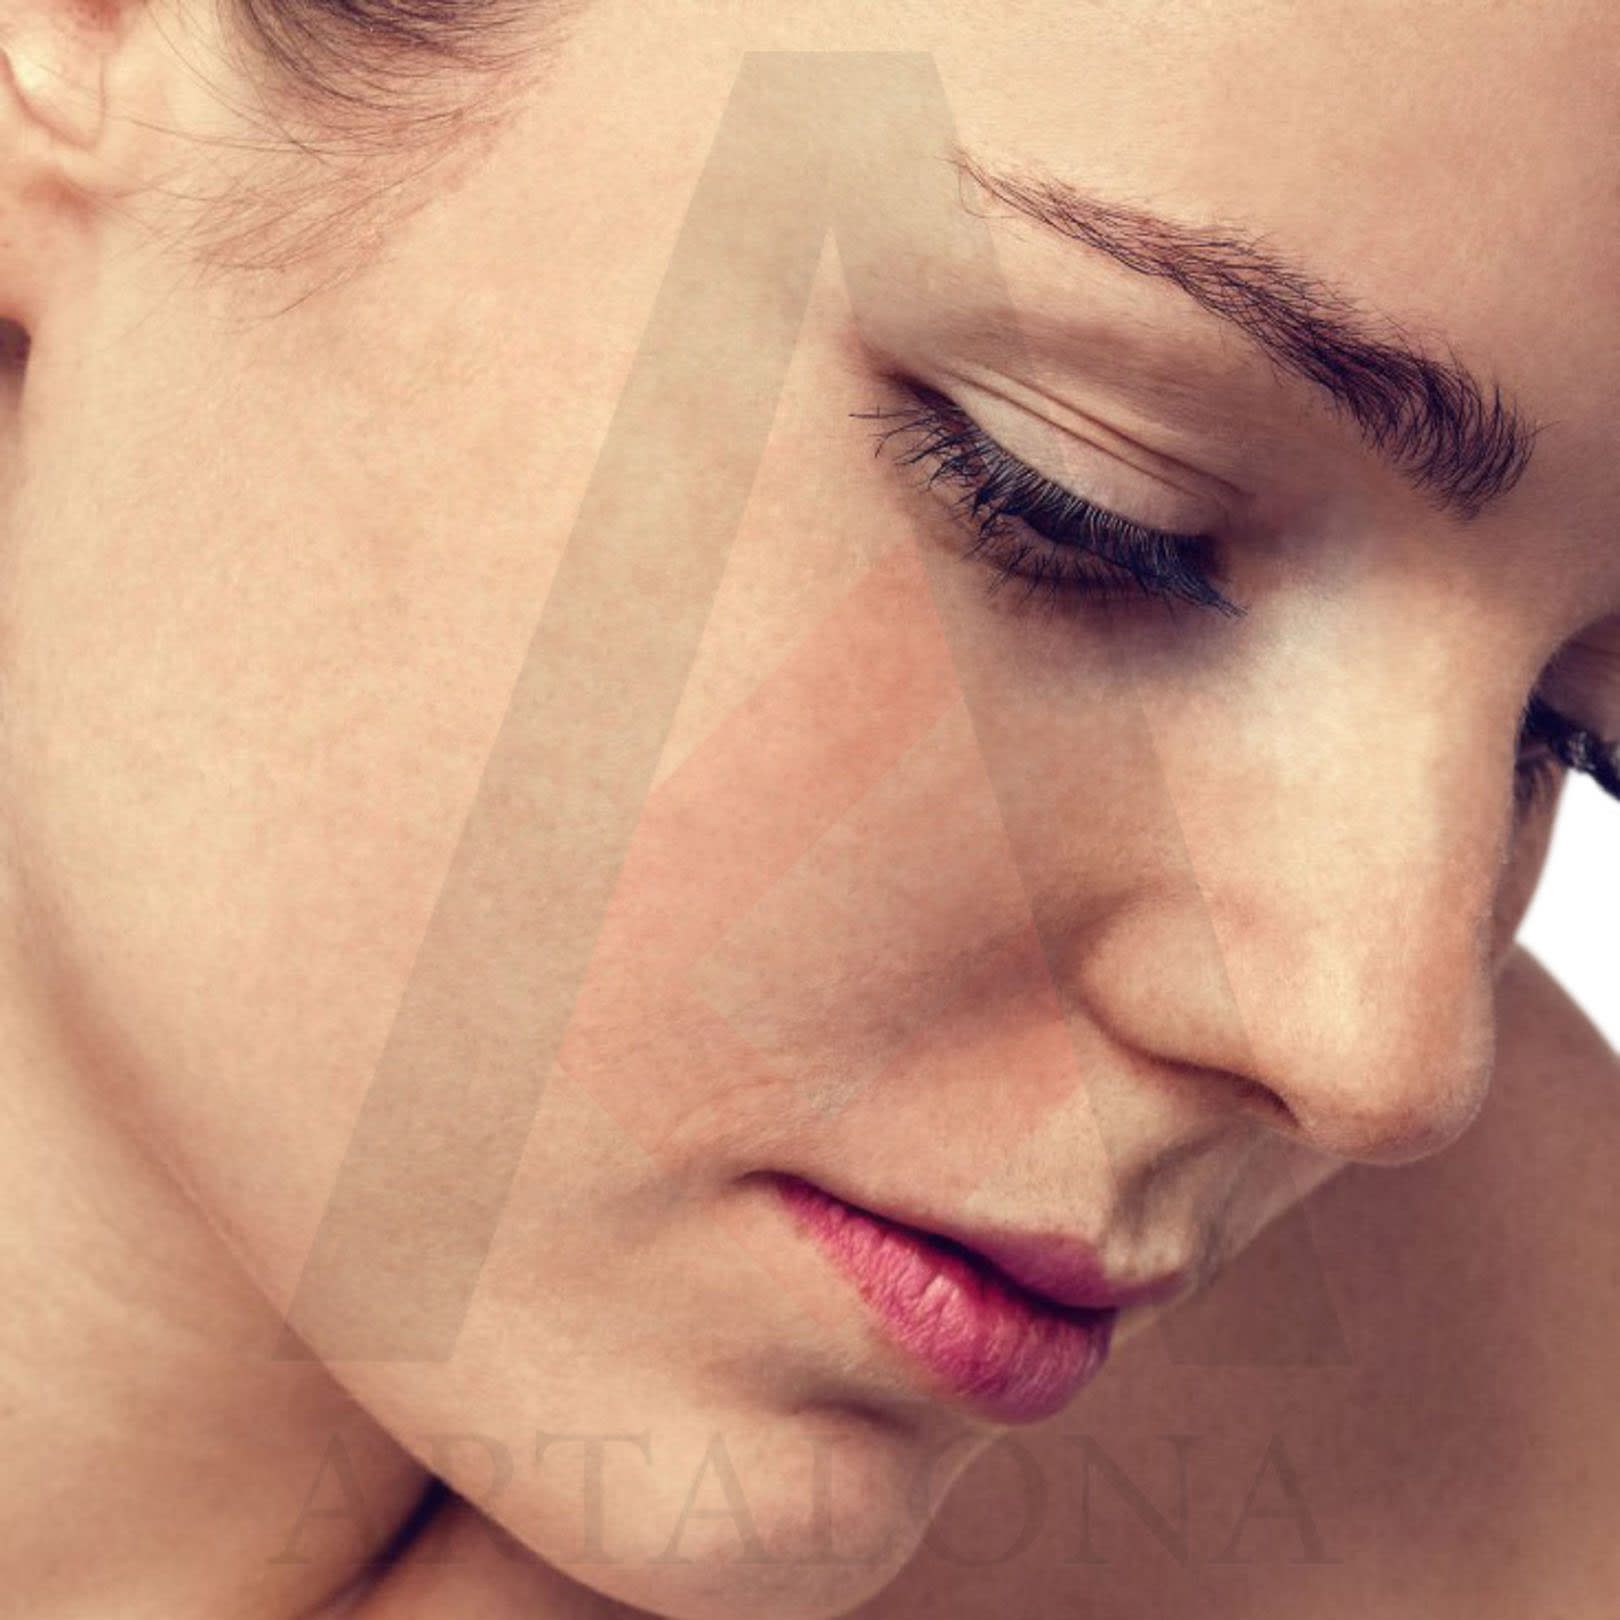 After-Image Retouching